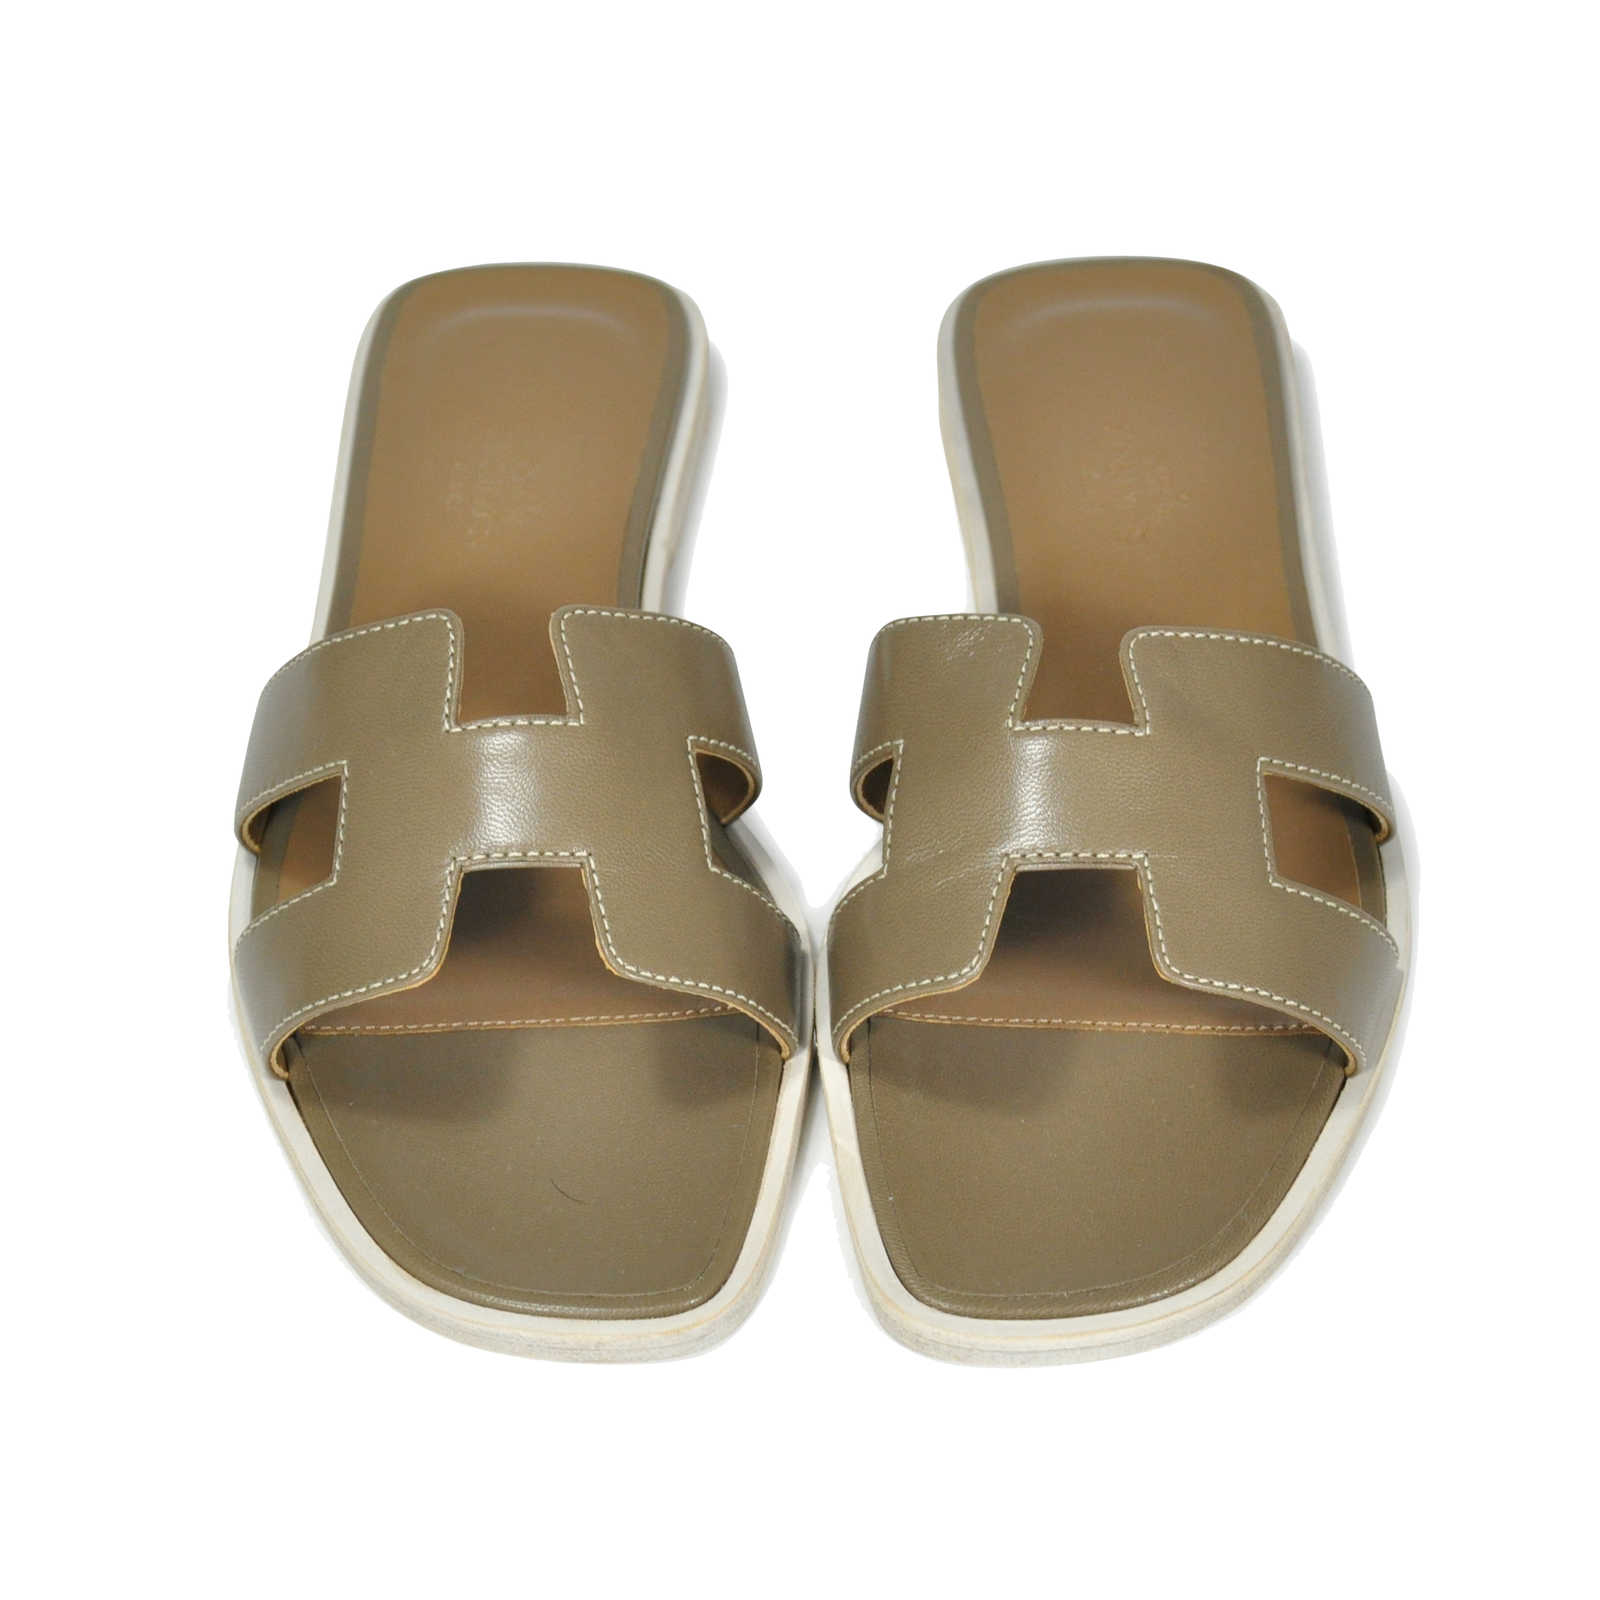 1749679aad6e Authentic Second Hand Hermès Oran Sandals (PSS-153-00005) - Thumbnail 0 ...